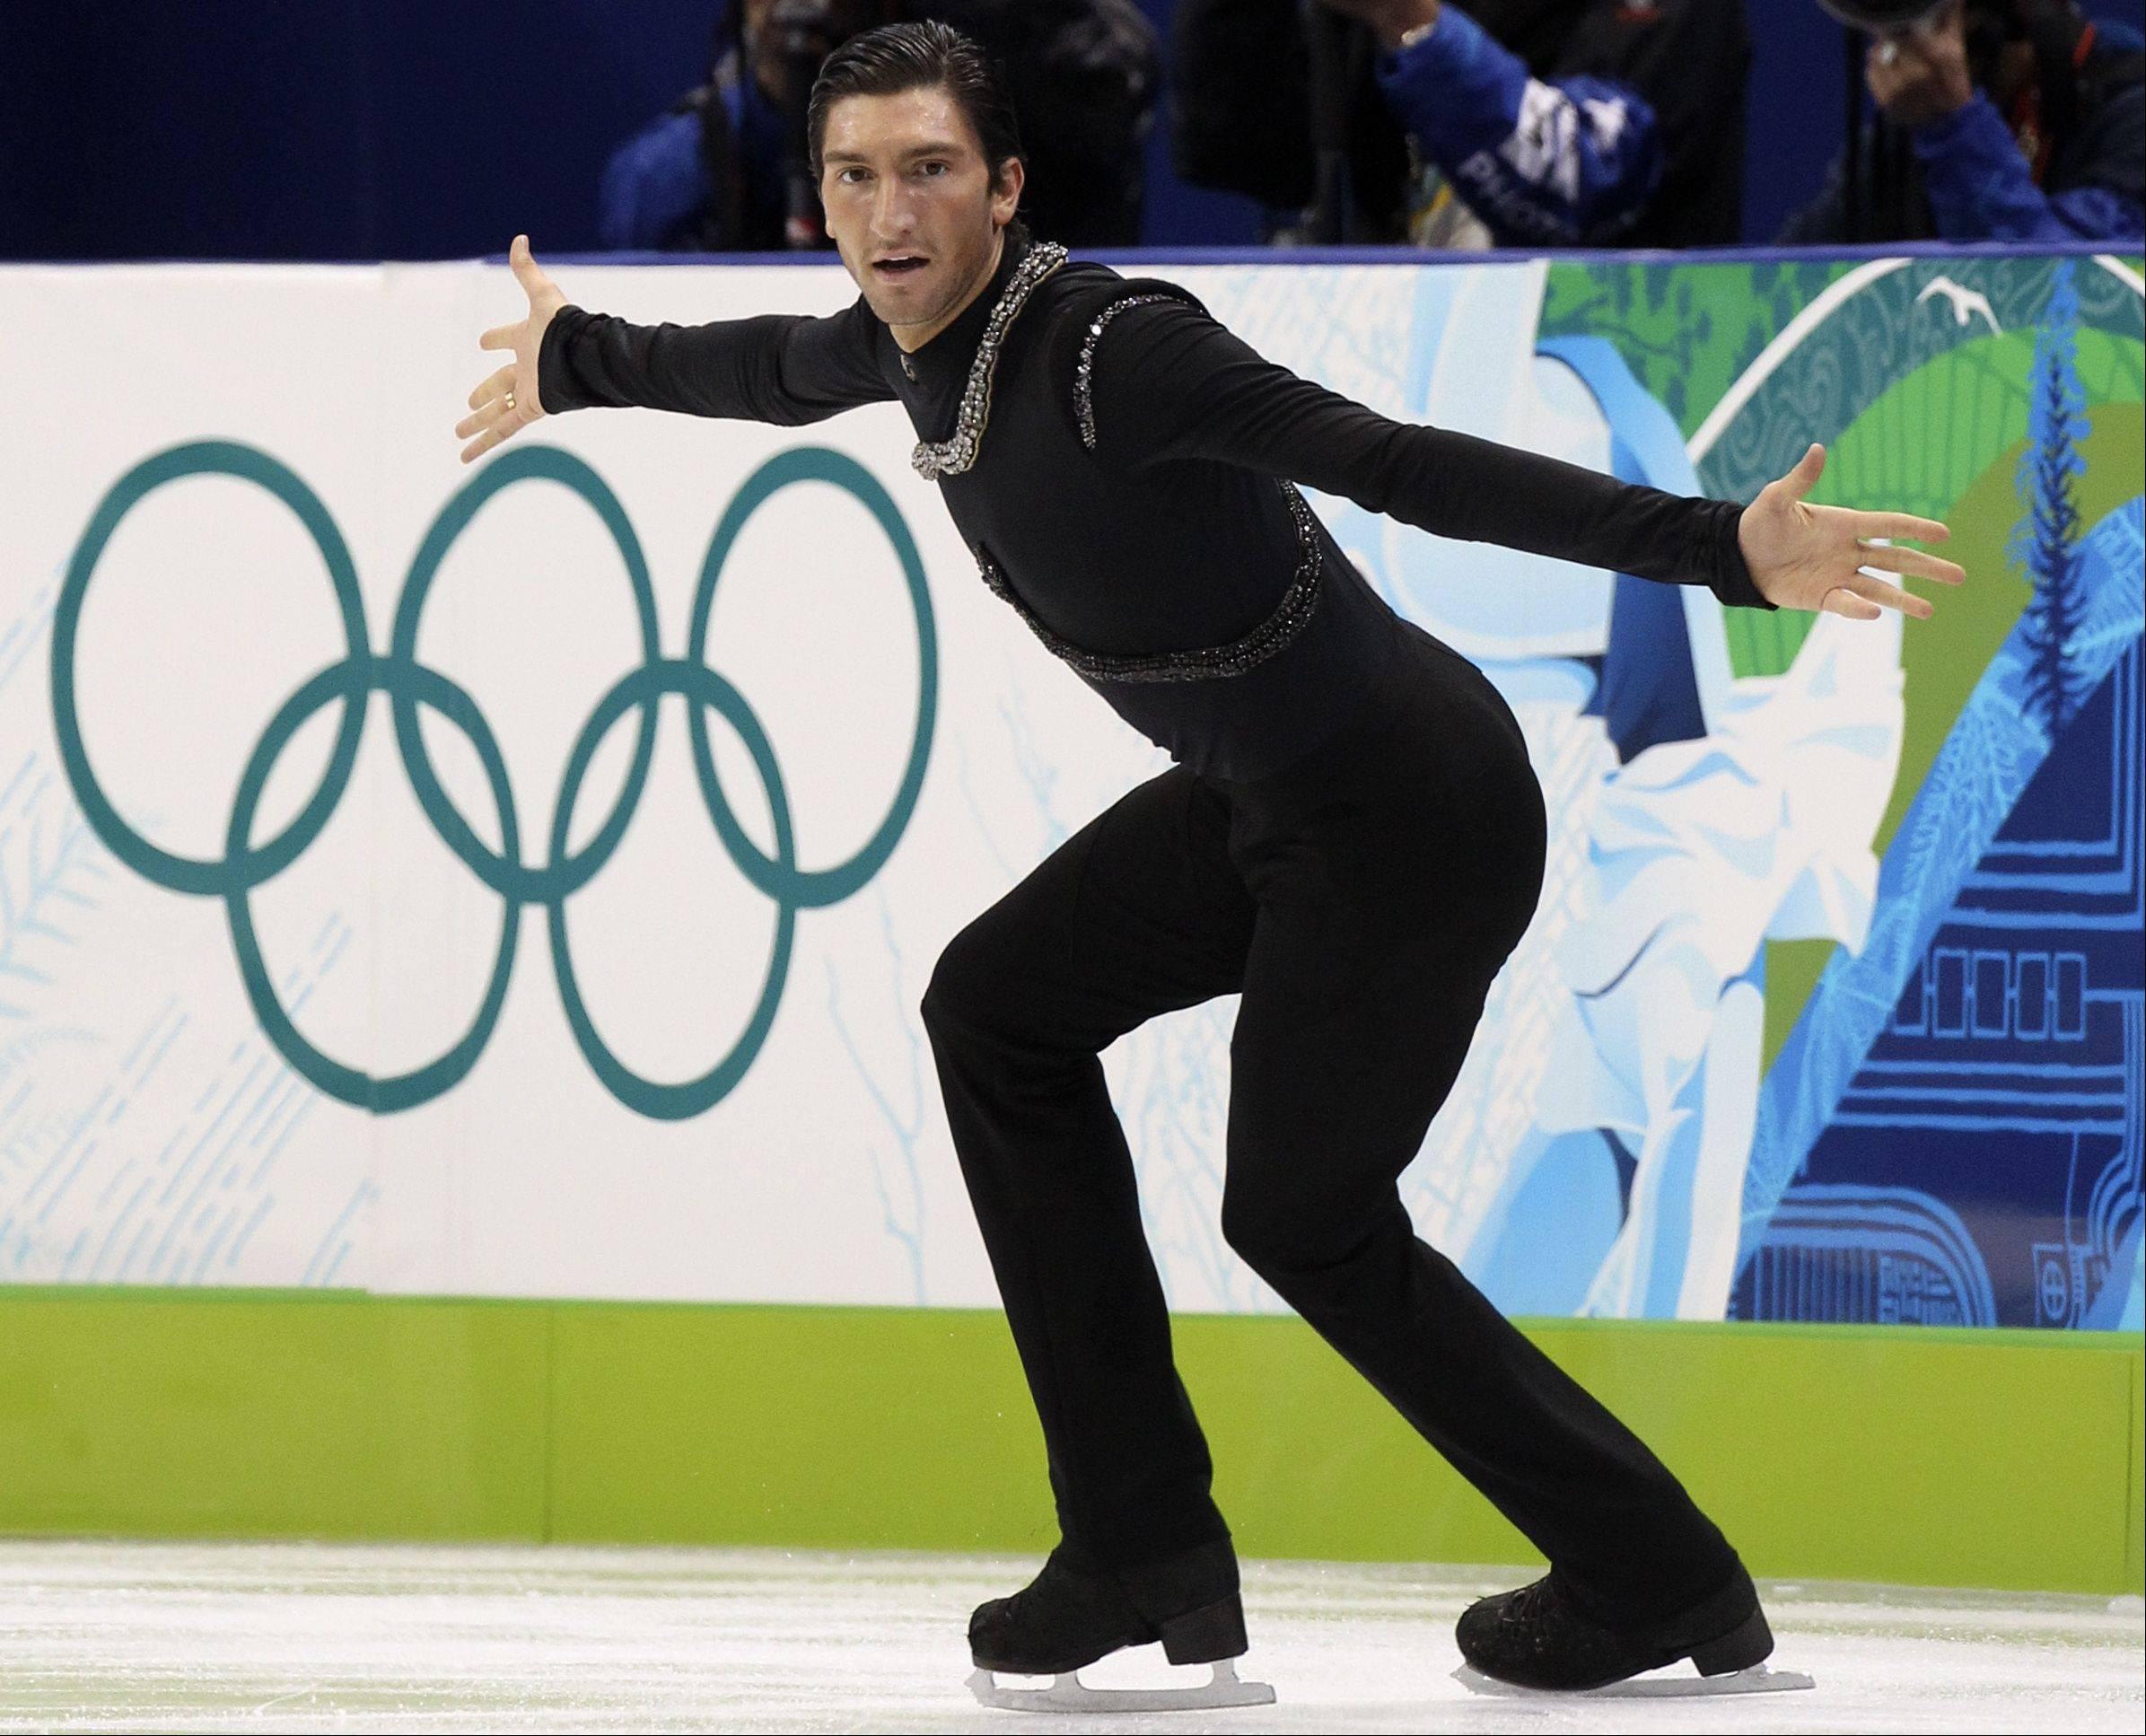 Naperville native Evan Lysacek will not be competing in the 2014 Olympics because of an injury to his left hip, he announced Tuesday. He is pictured here on his way to a gold medal in Vancouver in 2010.